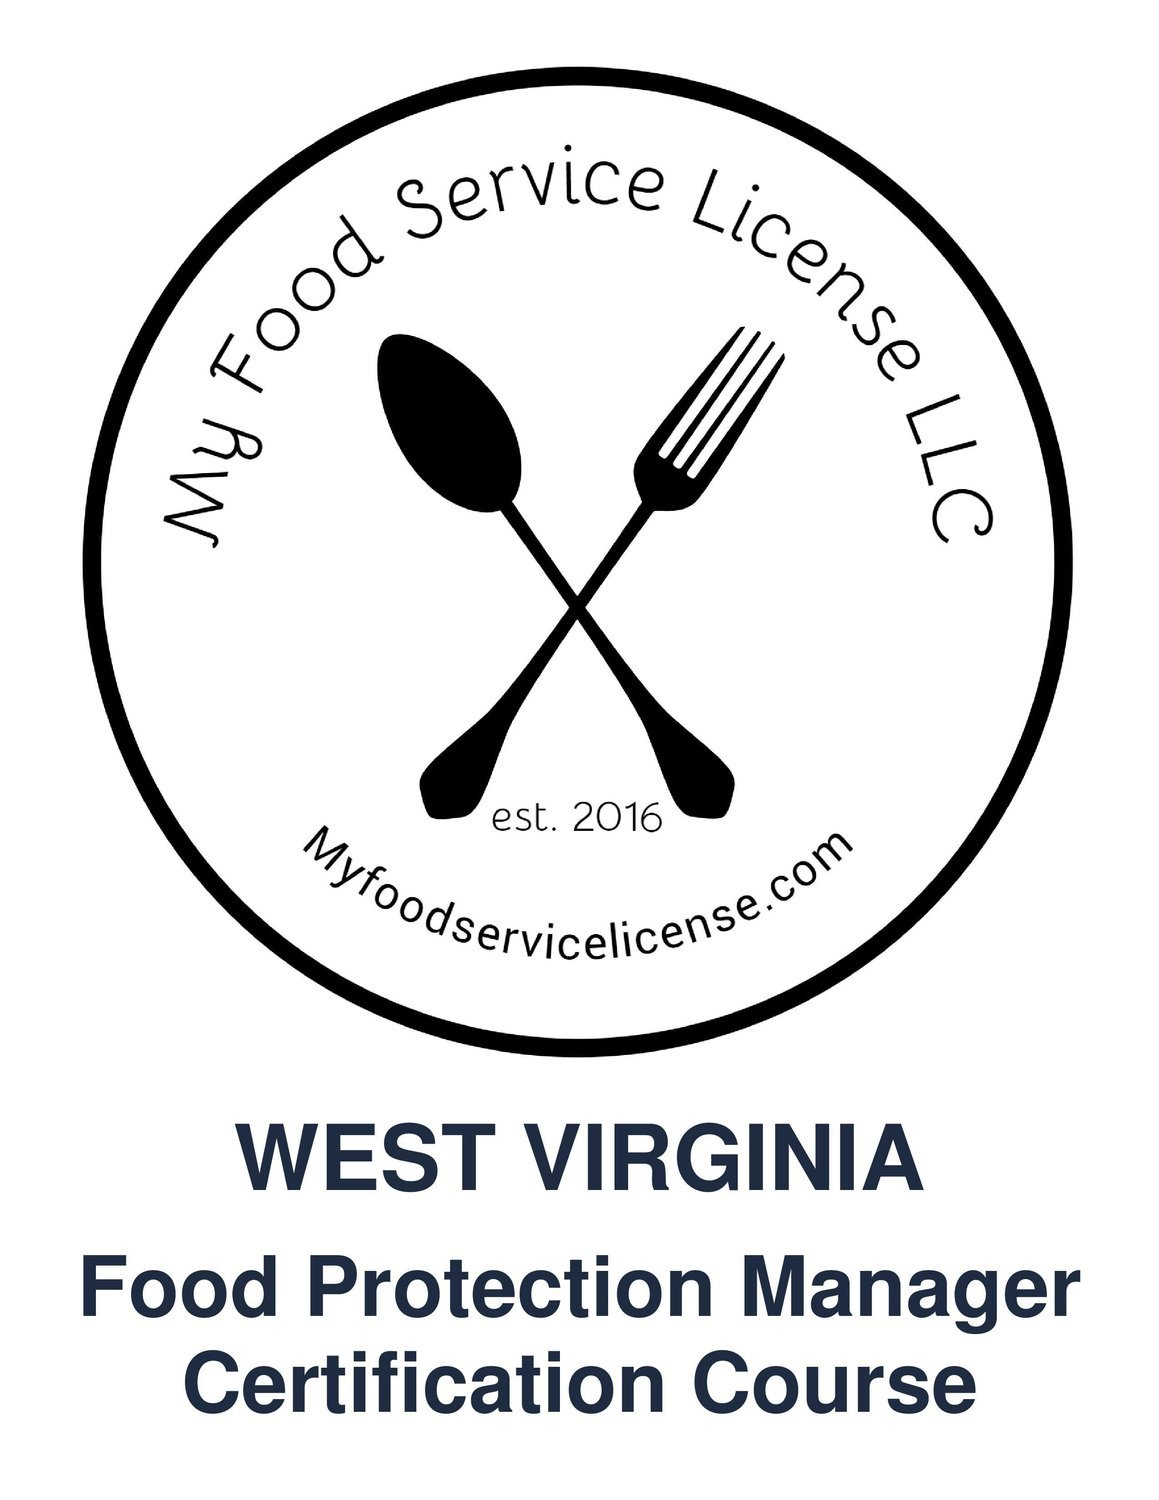 West Virginia Online Food Protection Manager Certification Course